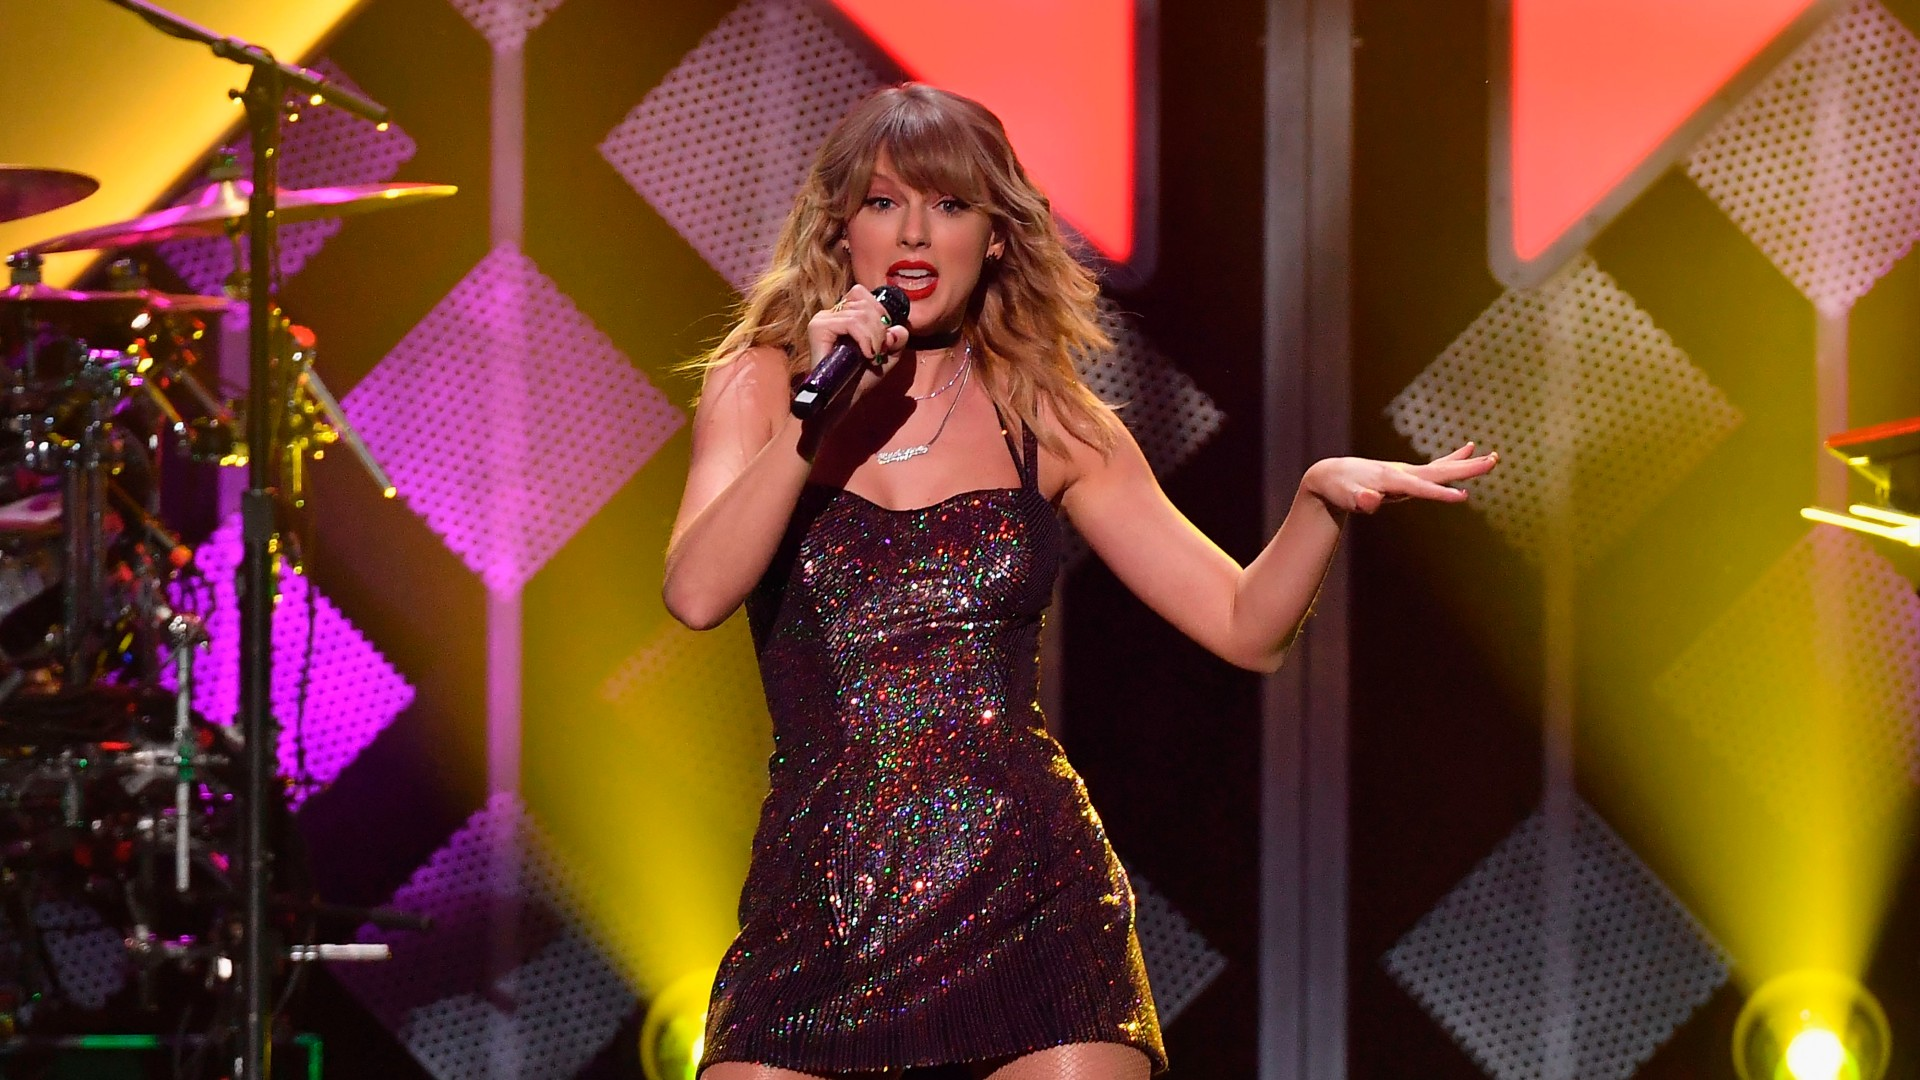 Taylor Swift performs onstage during the Z100's iHeartRadio Jingle Ball 2019 at Madison Square Garden in New York on Dec. 13, 2019. (ANGELA WEISS/AFP via Getty Images)